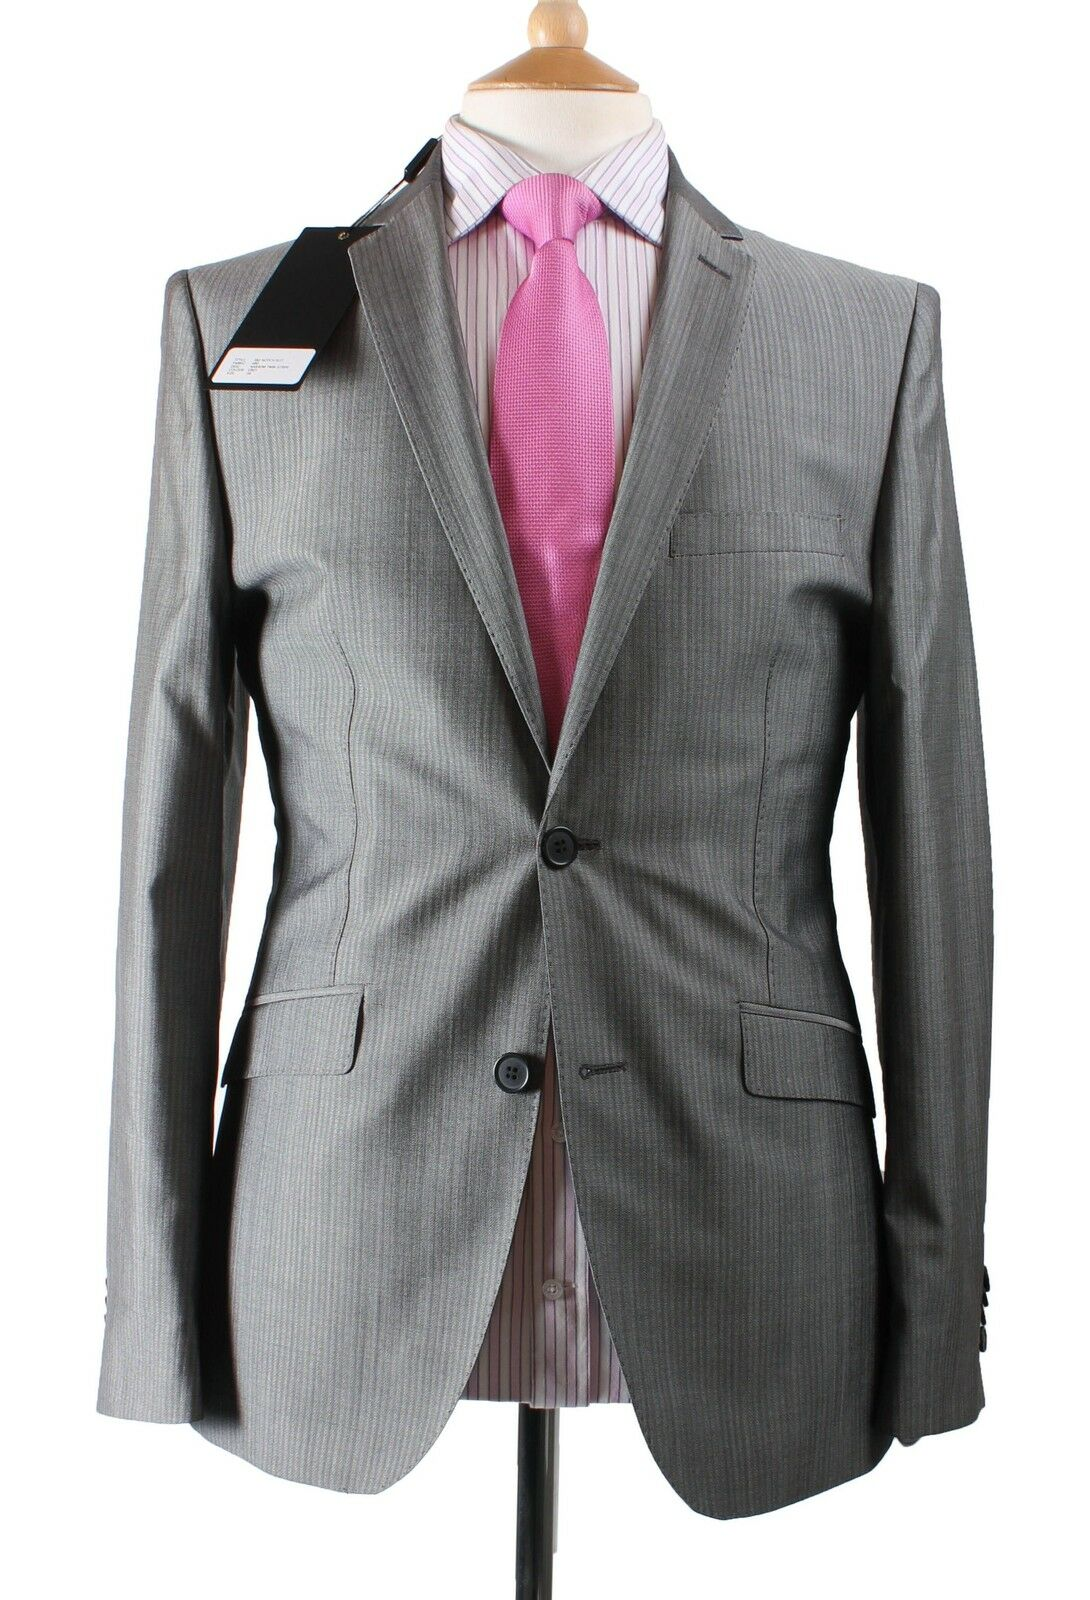 Holland Esquire Grau Narrow Twin Stripe  Shiny Wool Suit & FREE SUIT BAG UK38